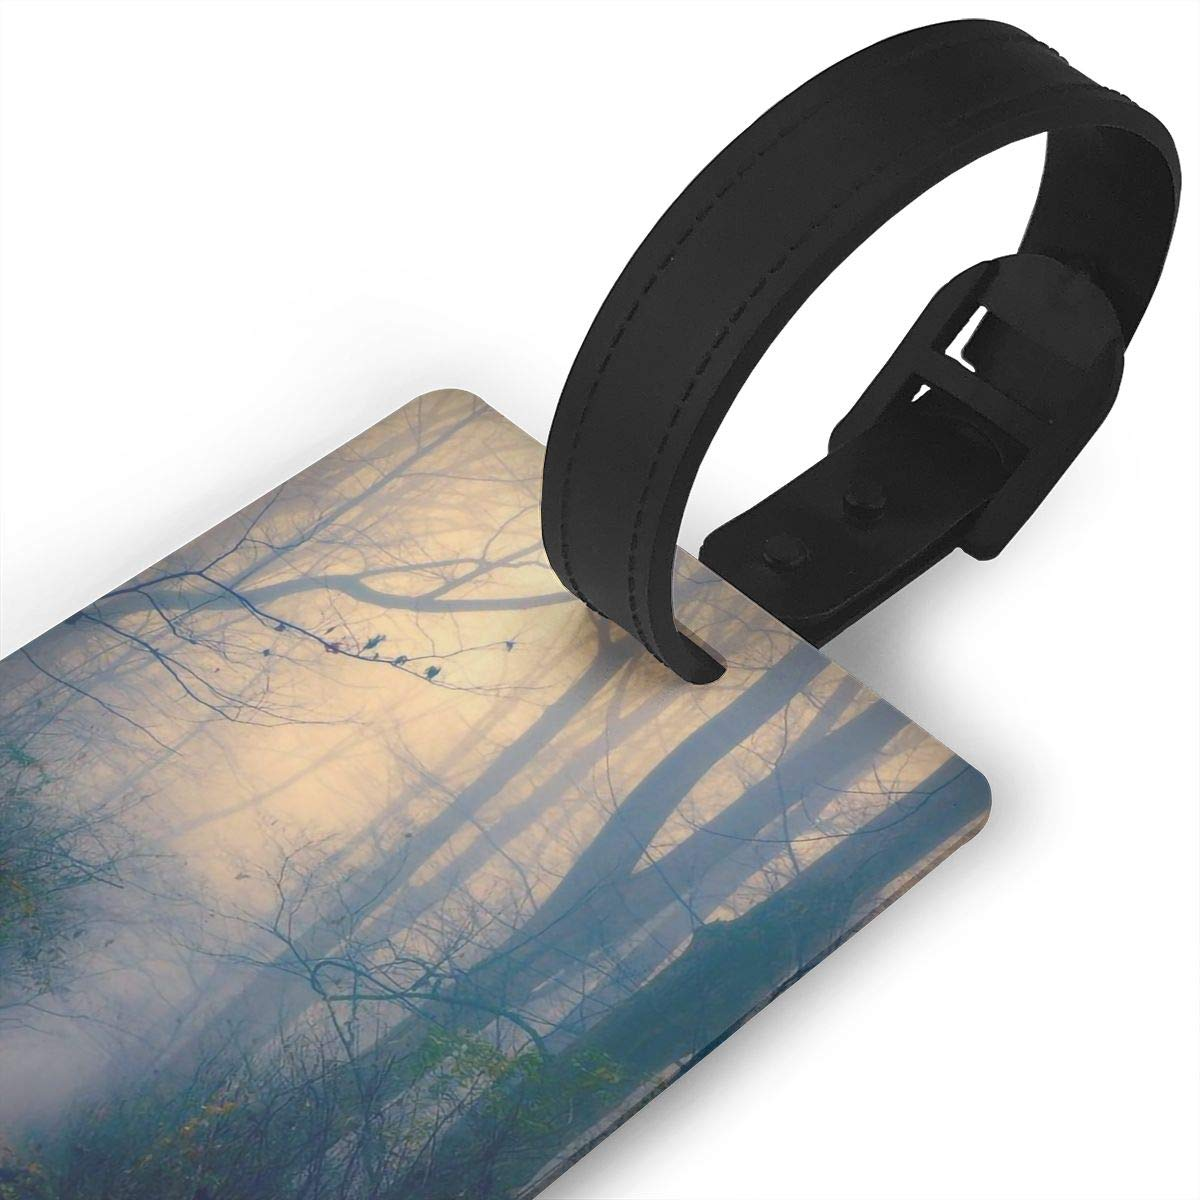 2 Pack Luggage Tags Tree Root Handbag Tag For Suitcase Bag Accessories